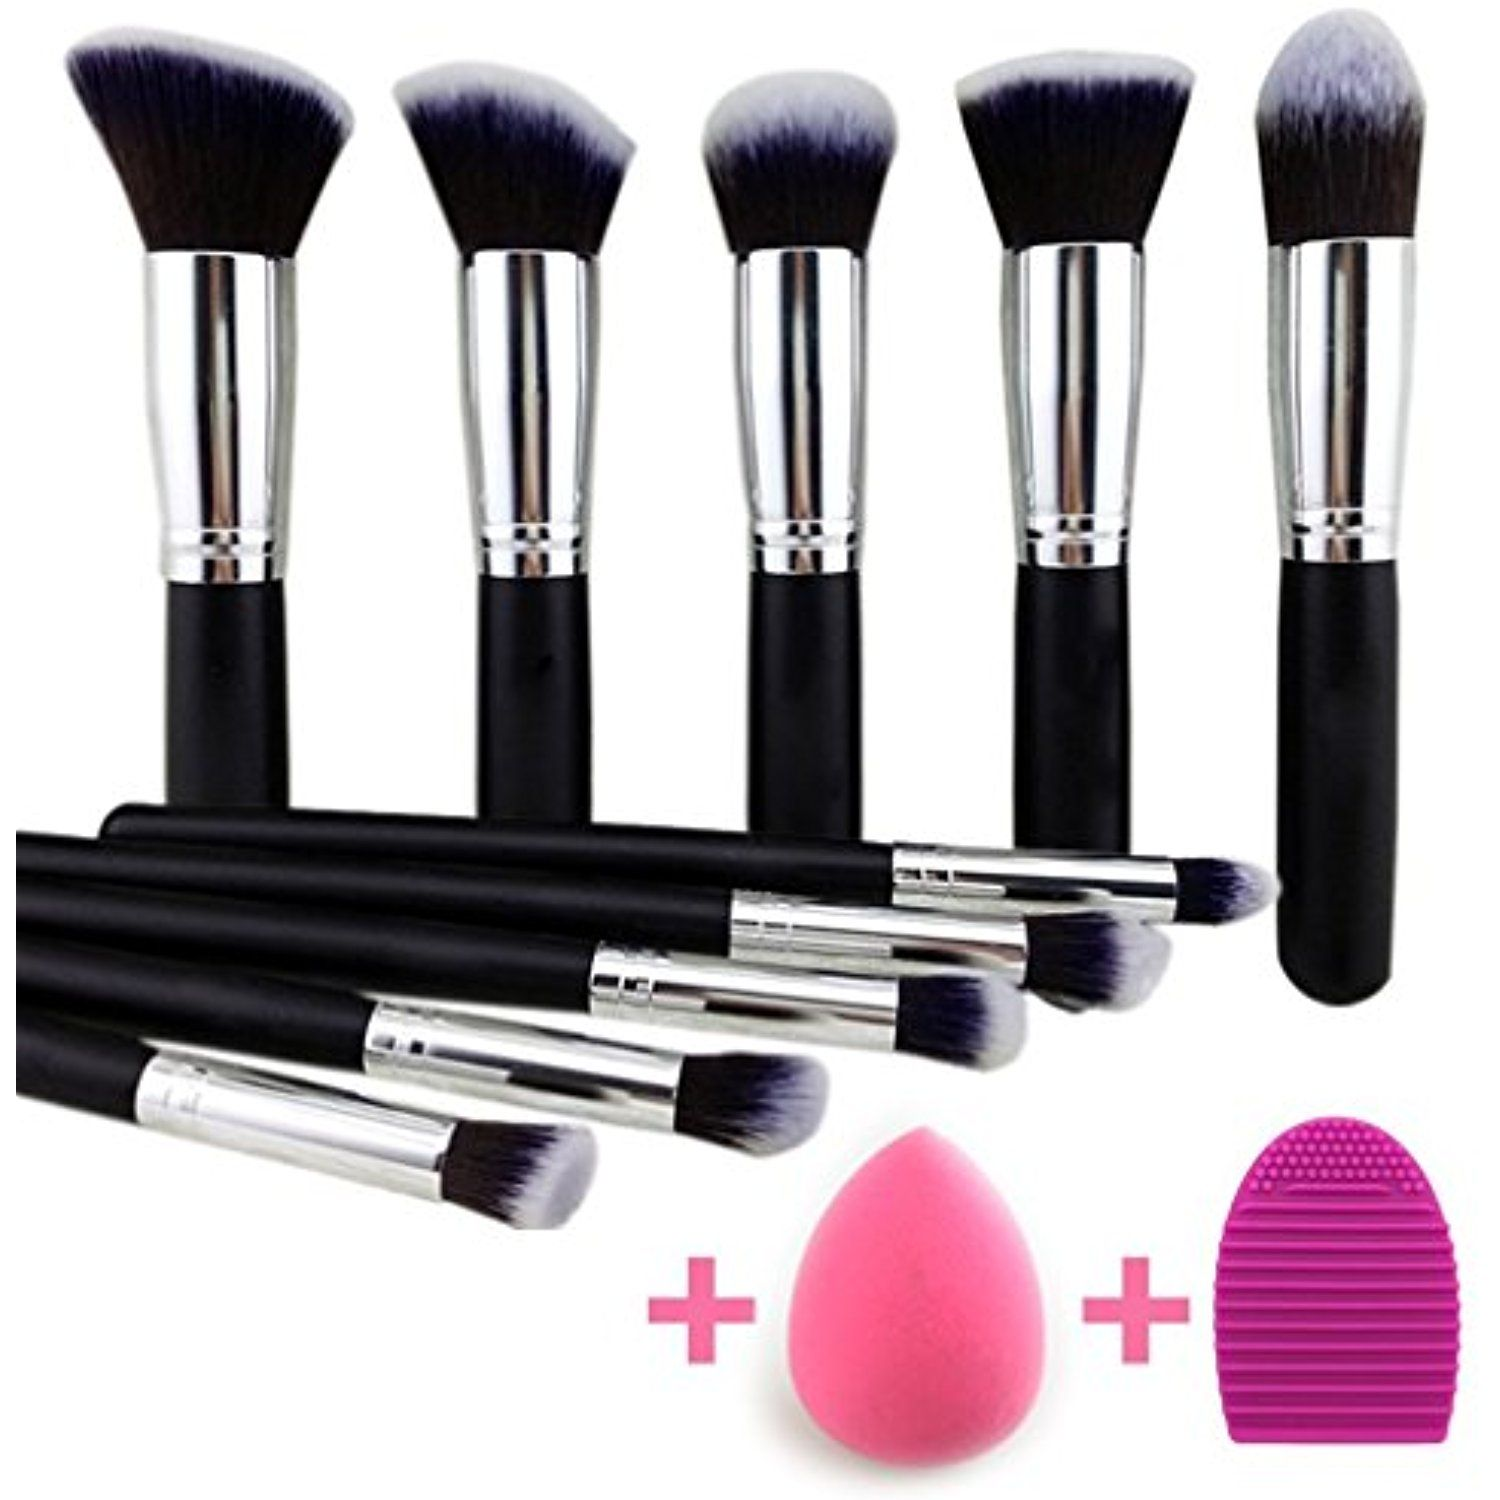 BEAKEY Makeup Brush Set Premium Synthetic Kabuki